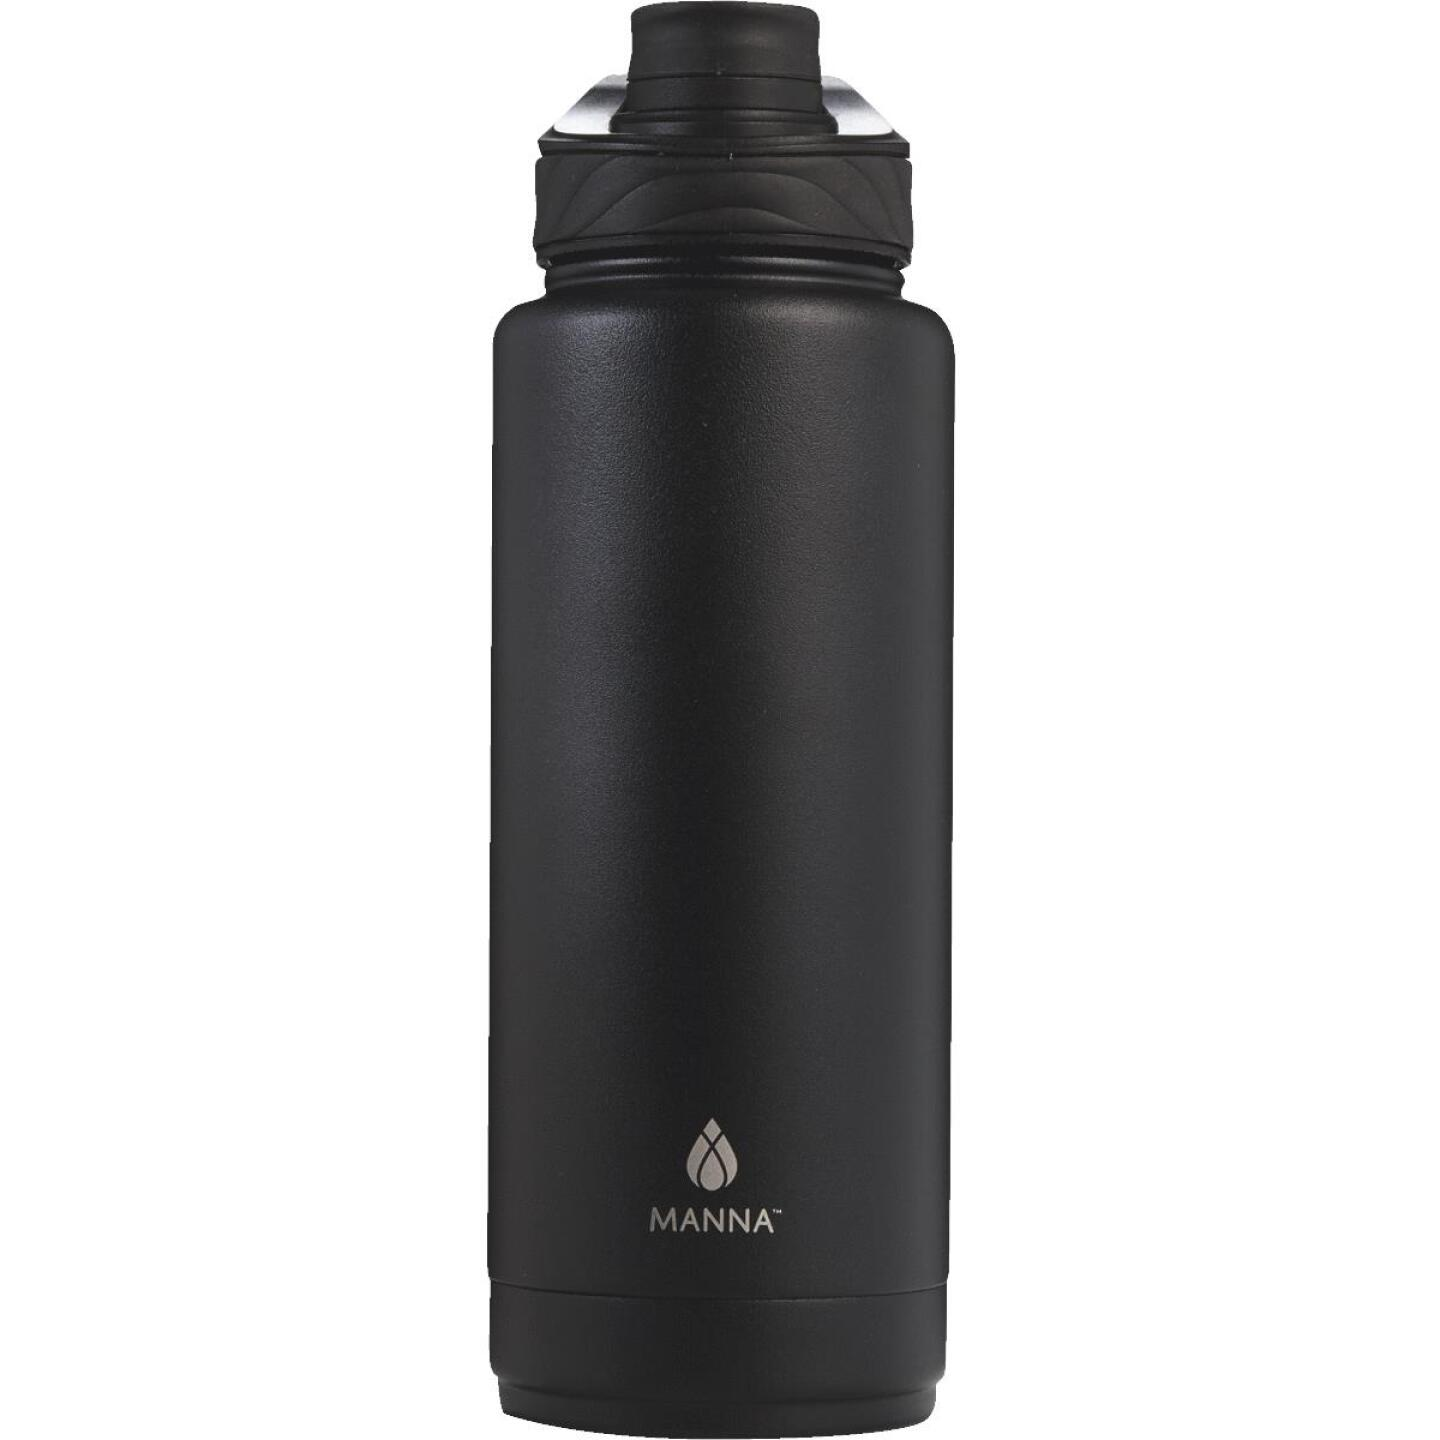 Manna 40 Oz. Onyx Black Convoy Insulated Vacuum Bottle Image 1